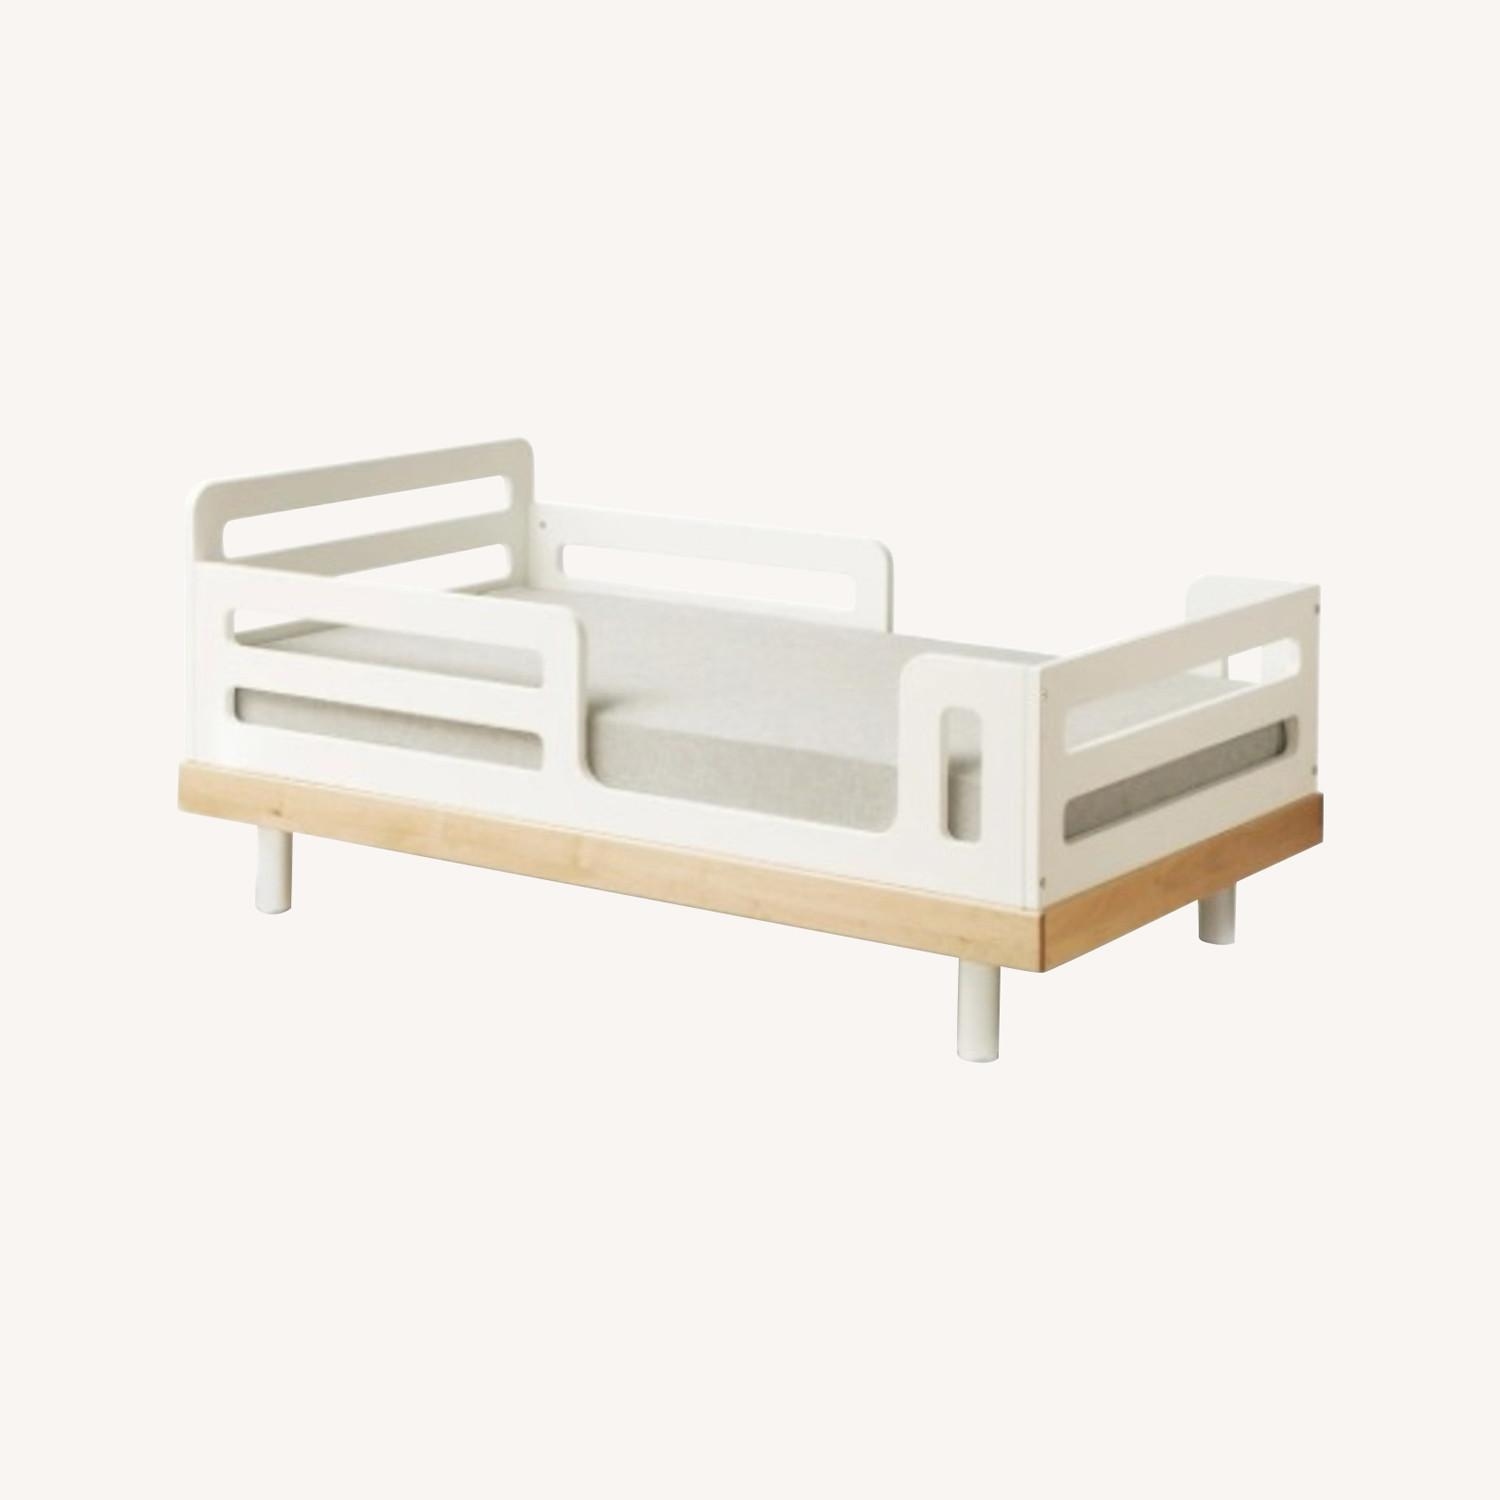 Oeuf Toddler Bed - image-0